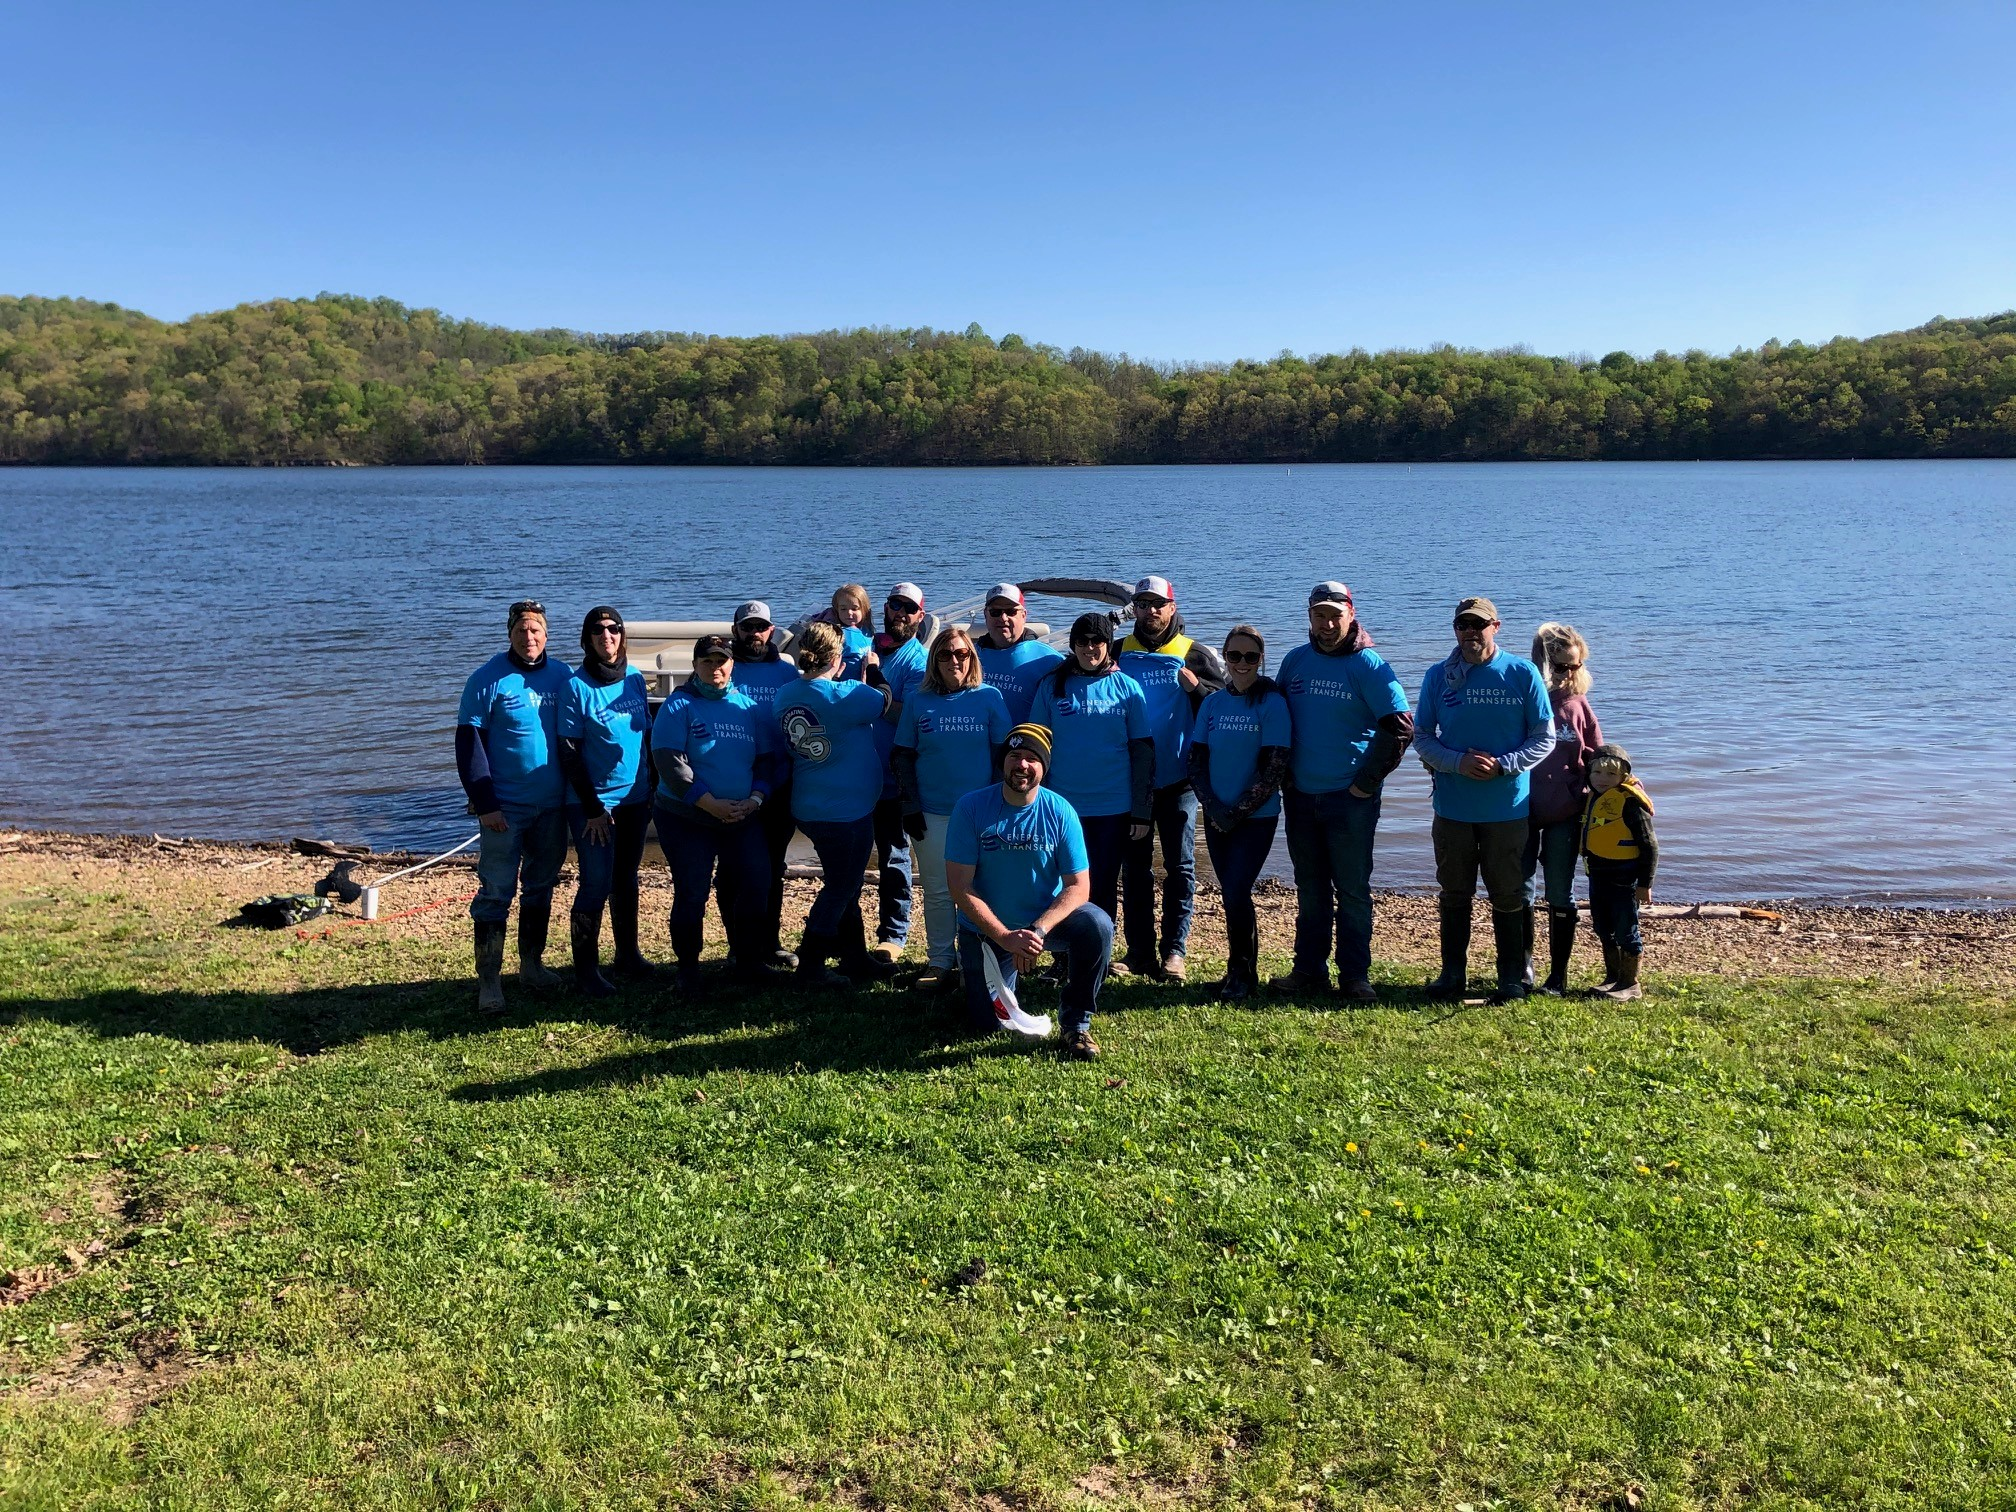 RaystownCleanup20 - Celebrating Earth Day in Pennsylvania